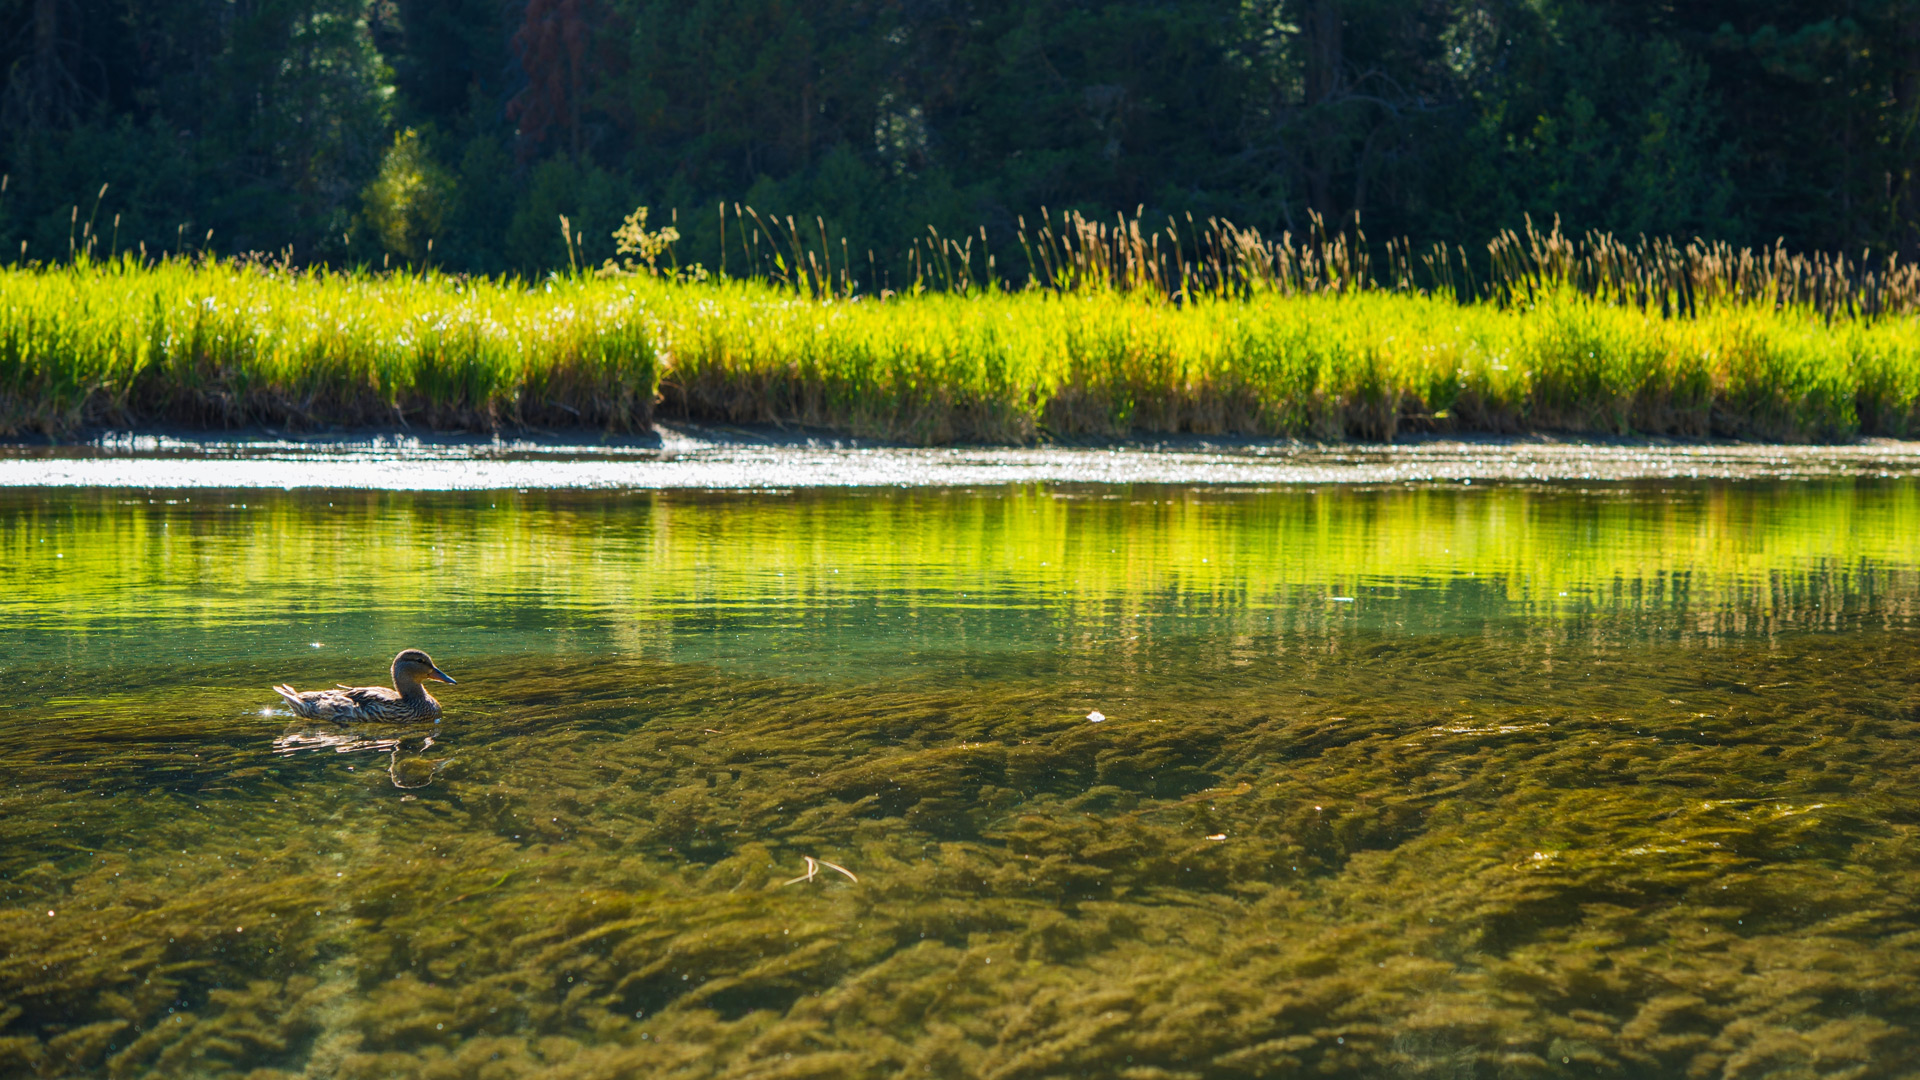 A duck swimming along the Truckee River marsh